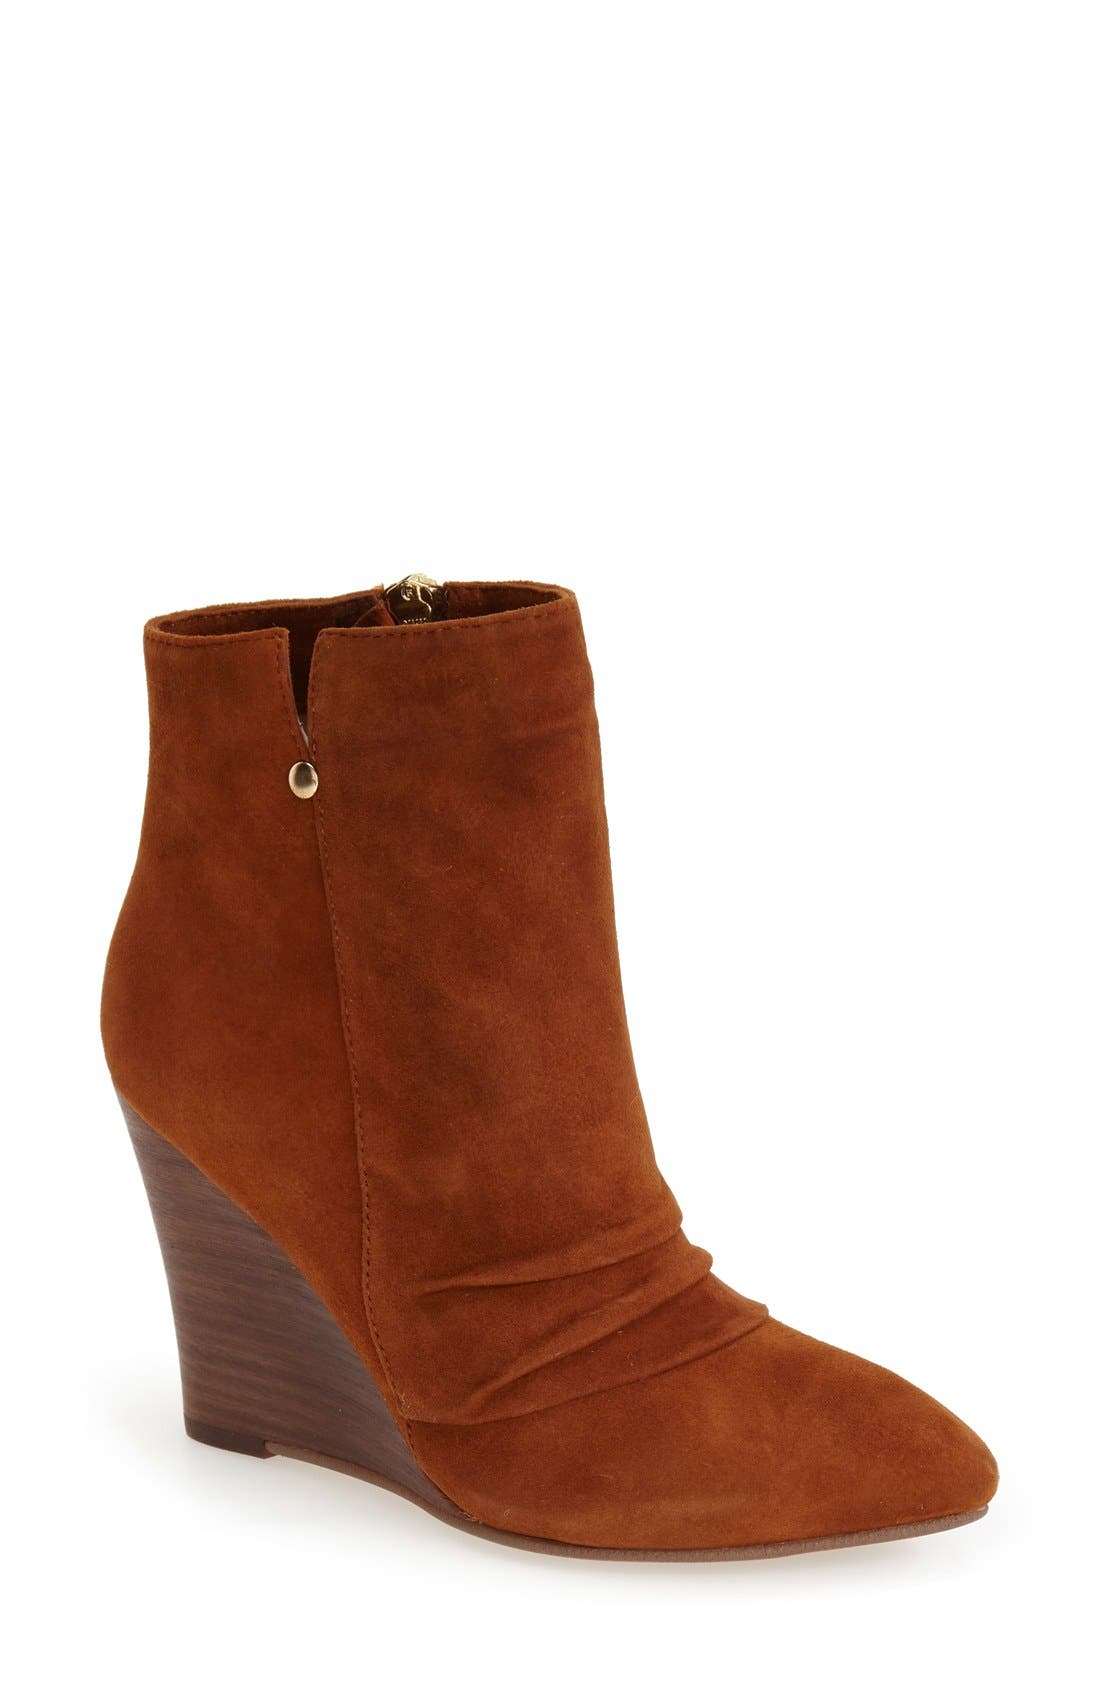 'Candyce' Wedge Bootie,                             Main thumbnail 1, color,                             Ginger Suede